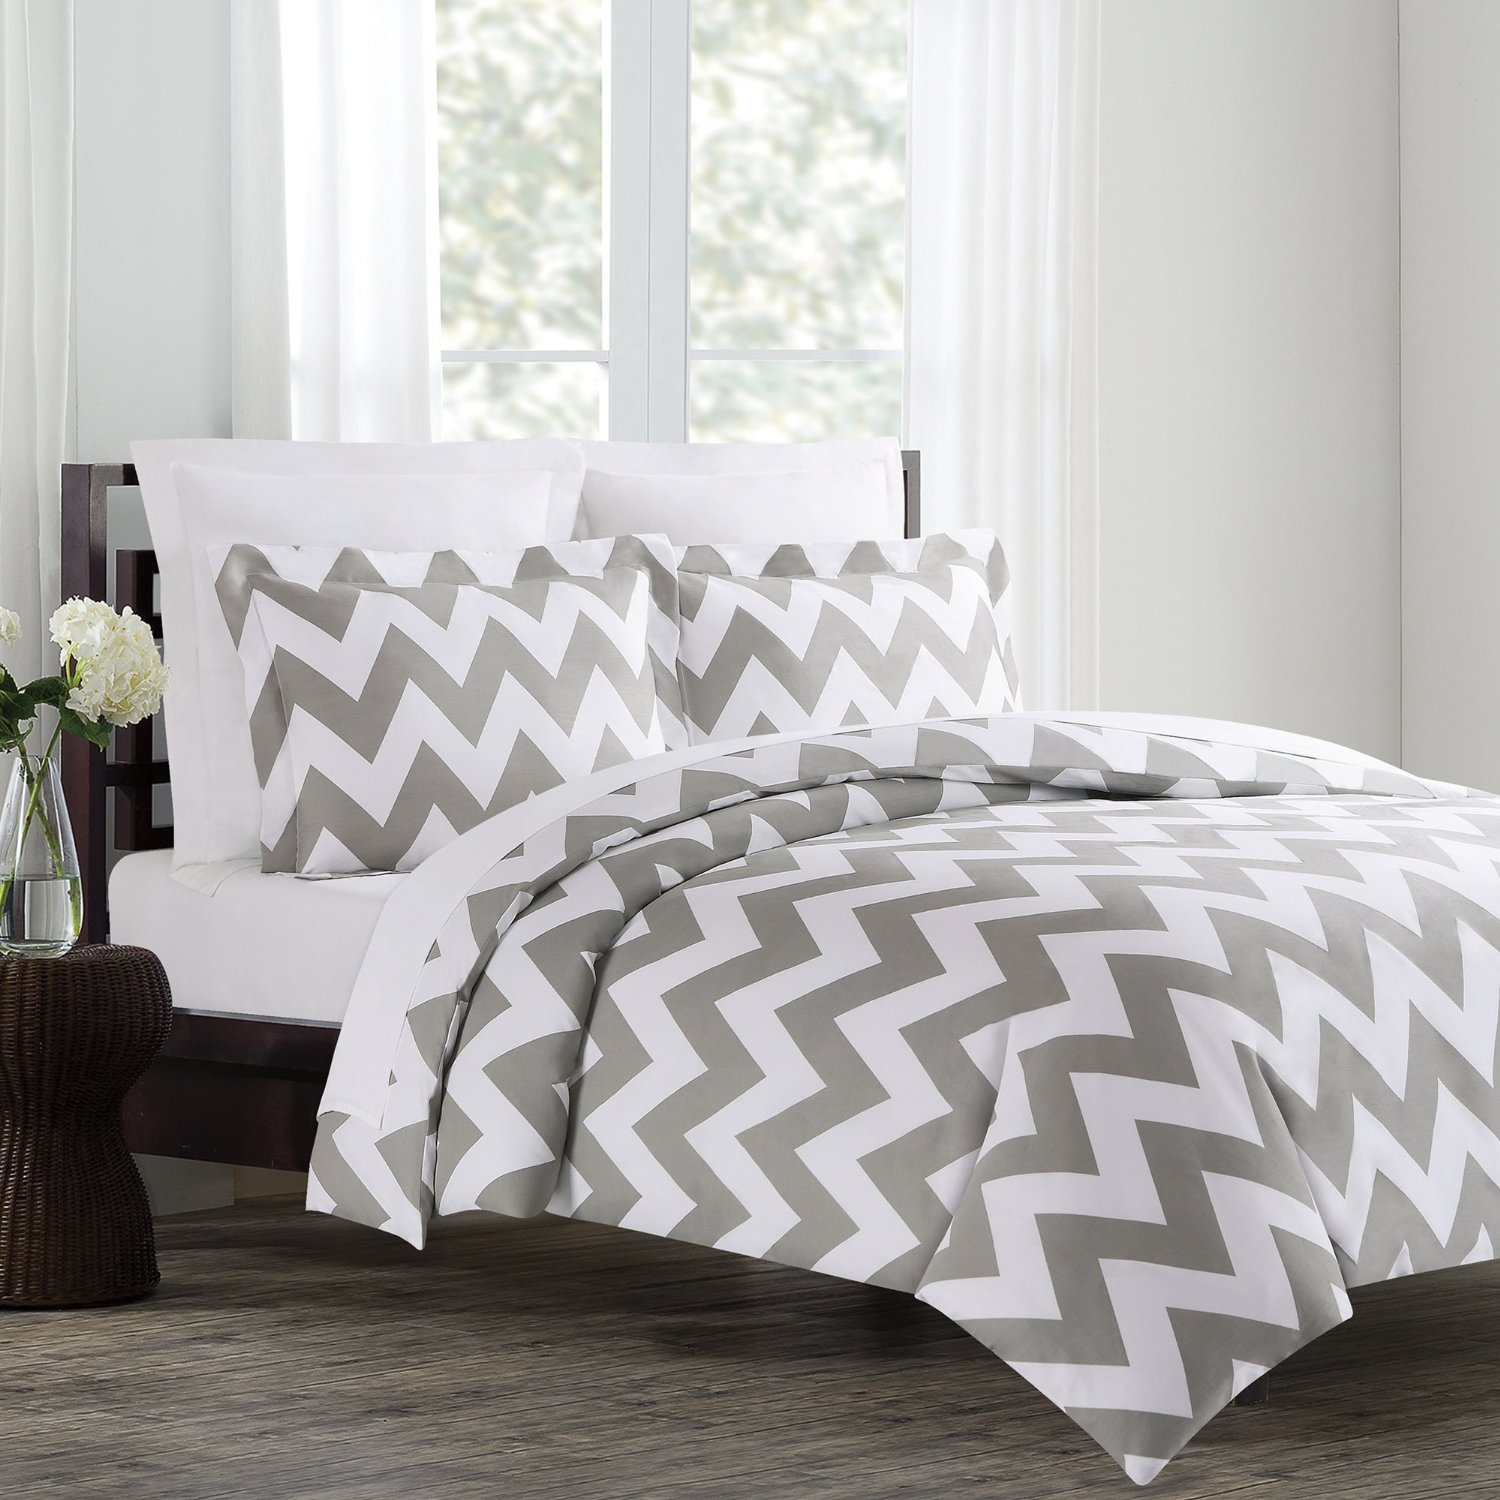 kids bed xl comforter of chevron teal twin image set bedding lostcoastshuttle for